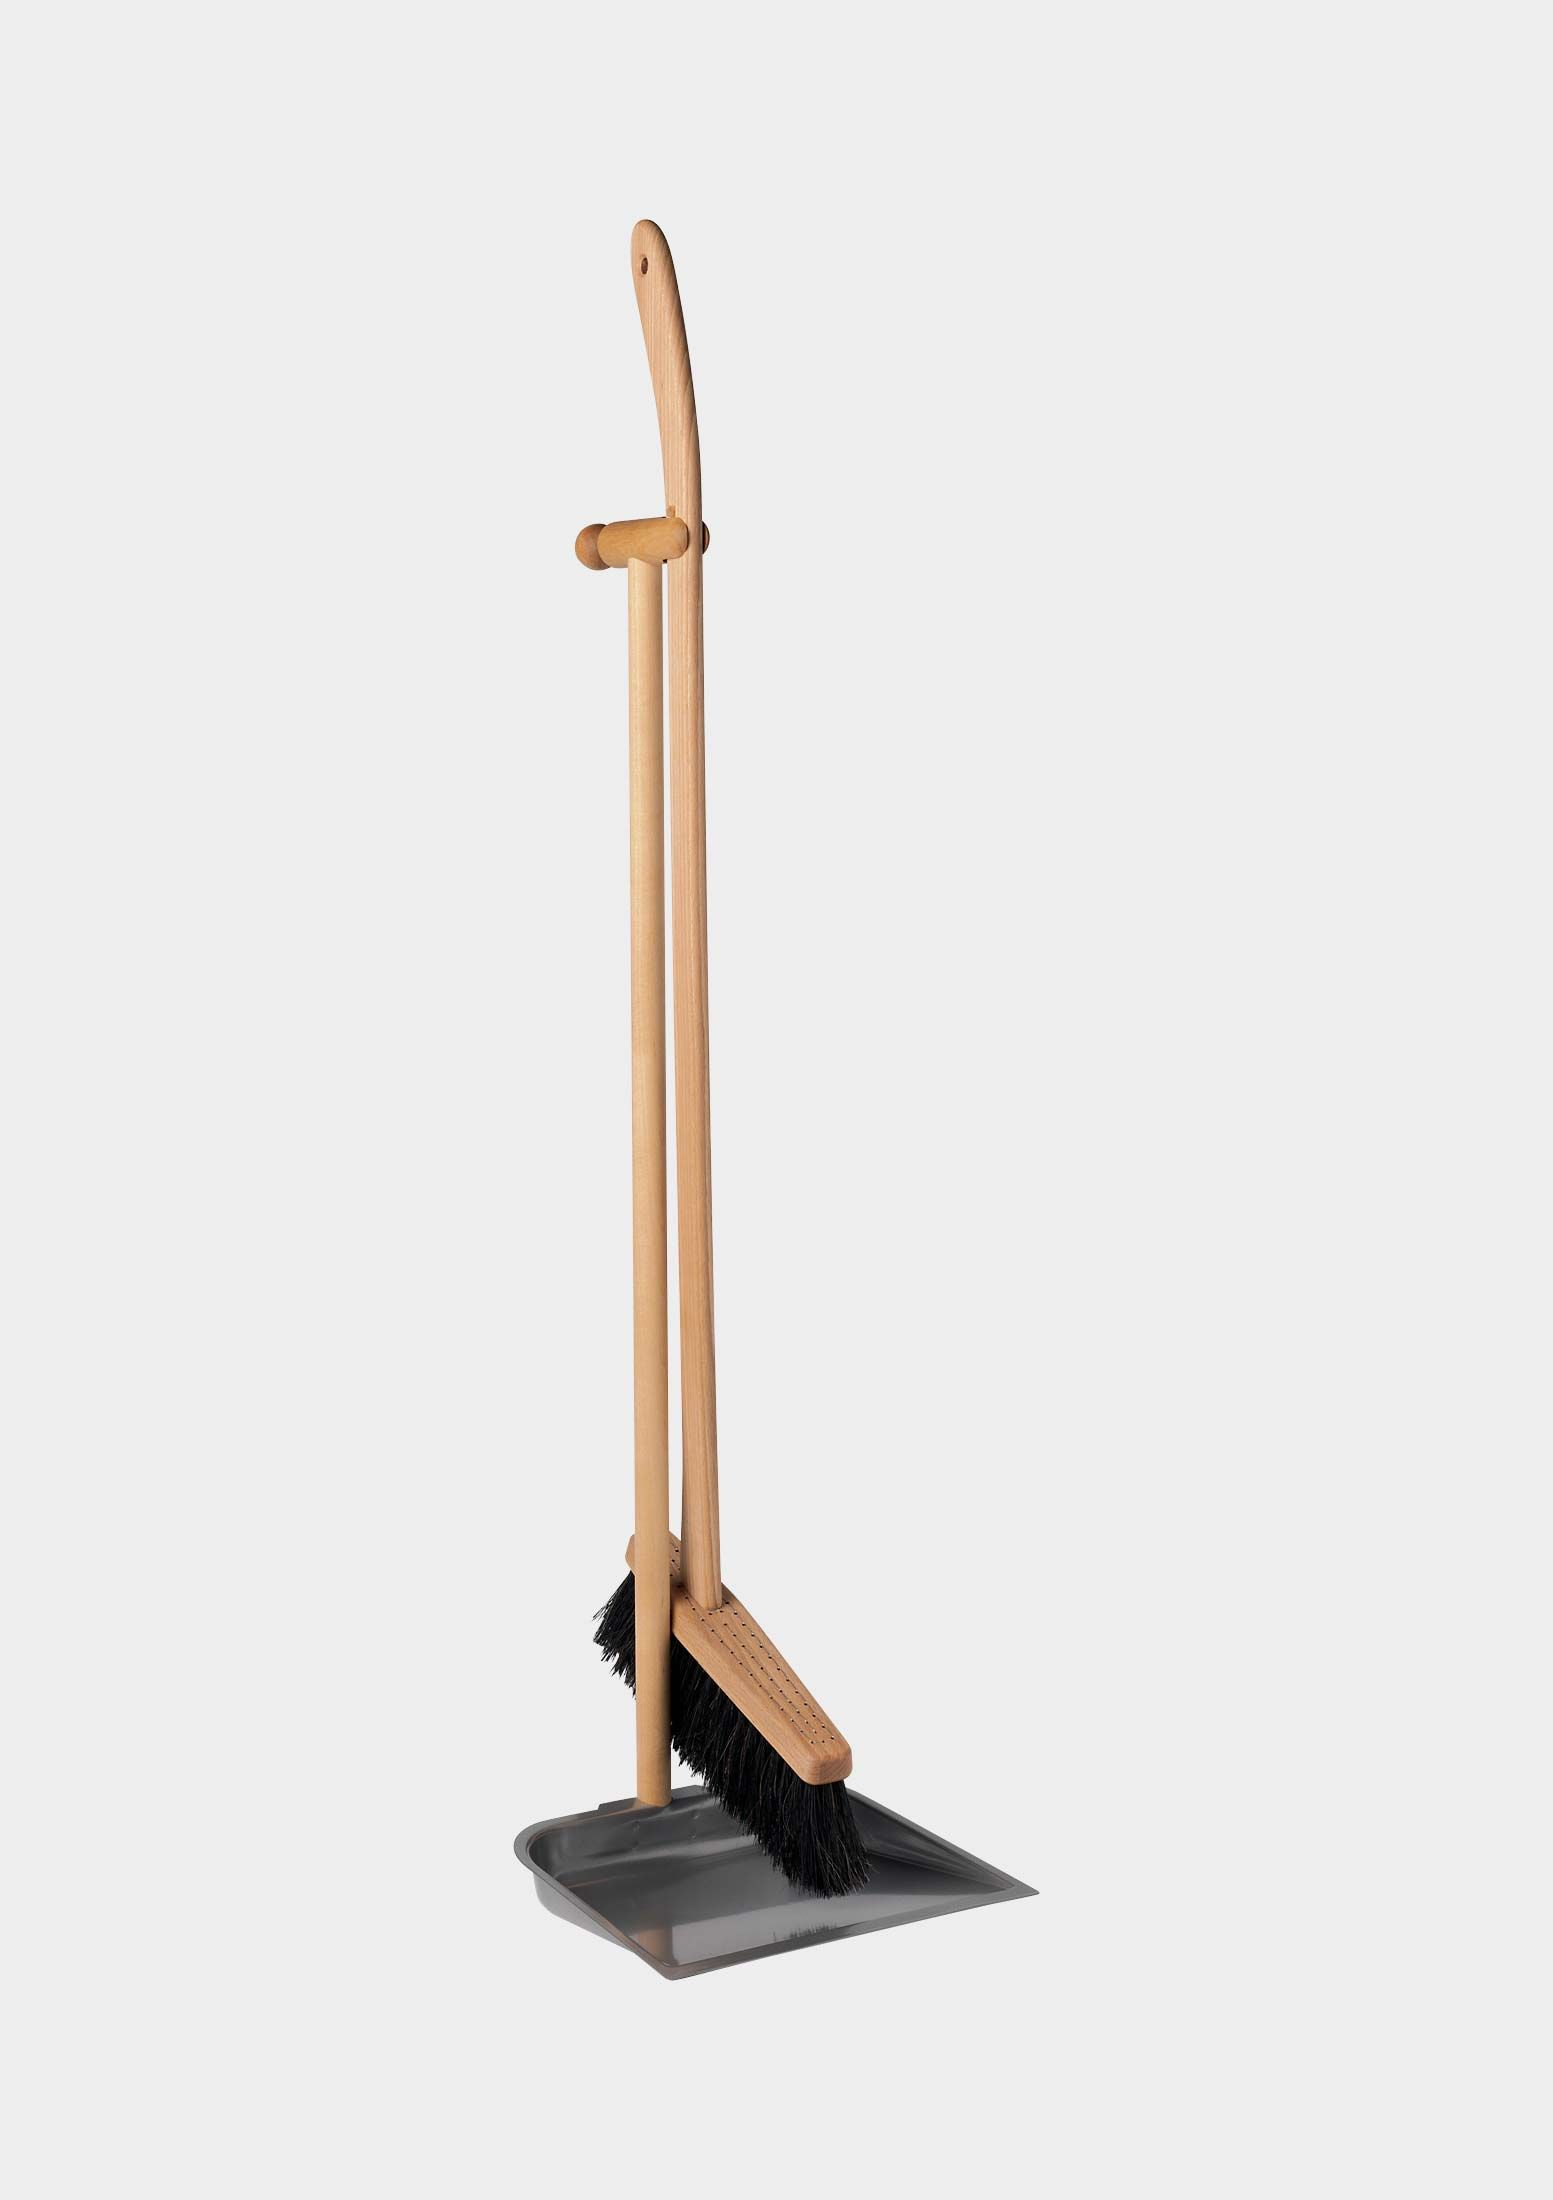 dustpan and brush 49 00 metal dustpan and horsehair brush with